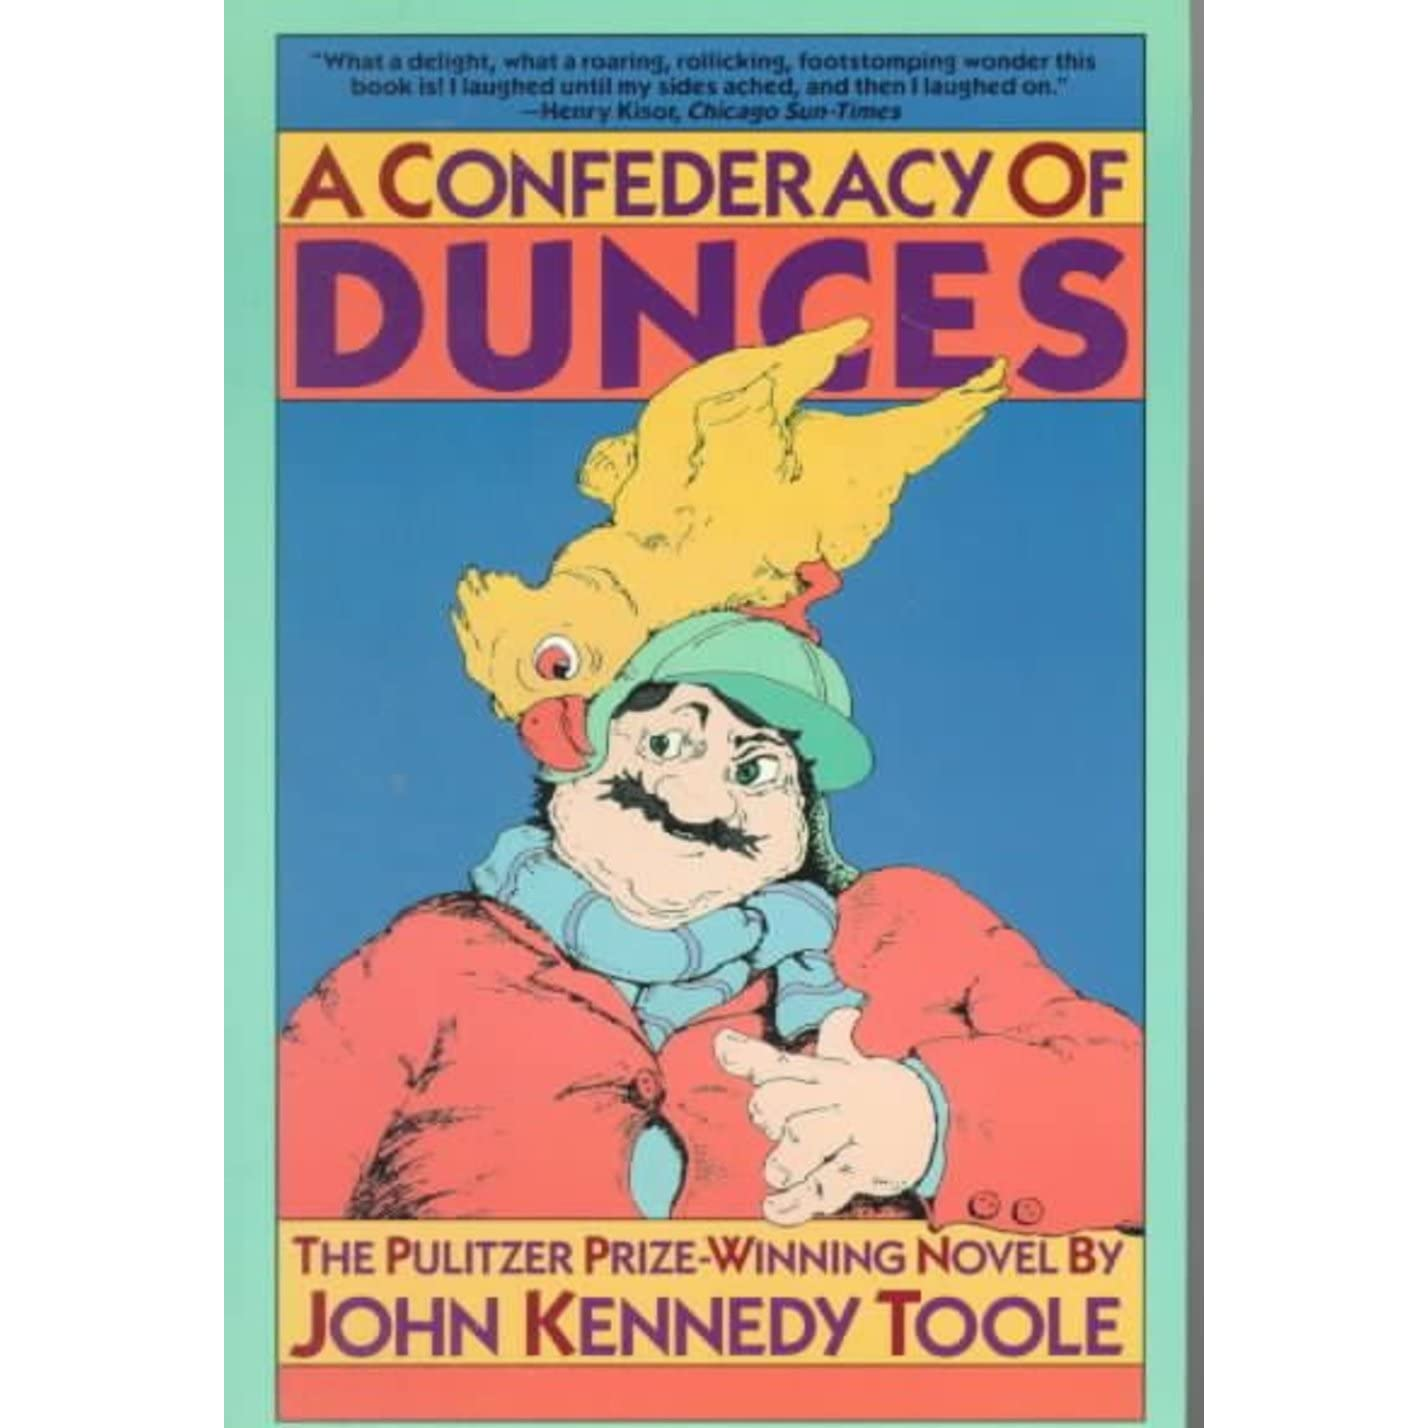 confederacy of dunces essay questions The big question, of course: will audiences finally see ignatius on the big screen as a part of dubos' film  a number of directors have tried to turn a confederacy of dunces into a.